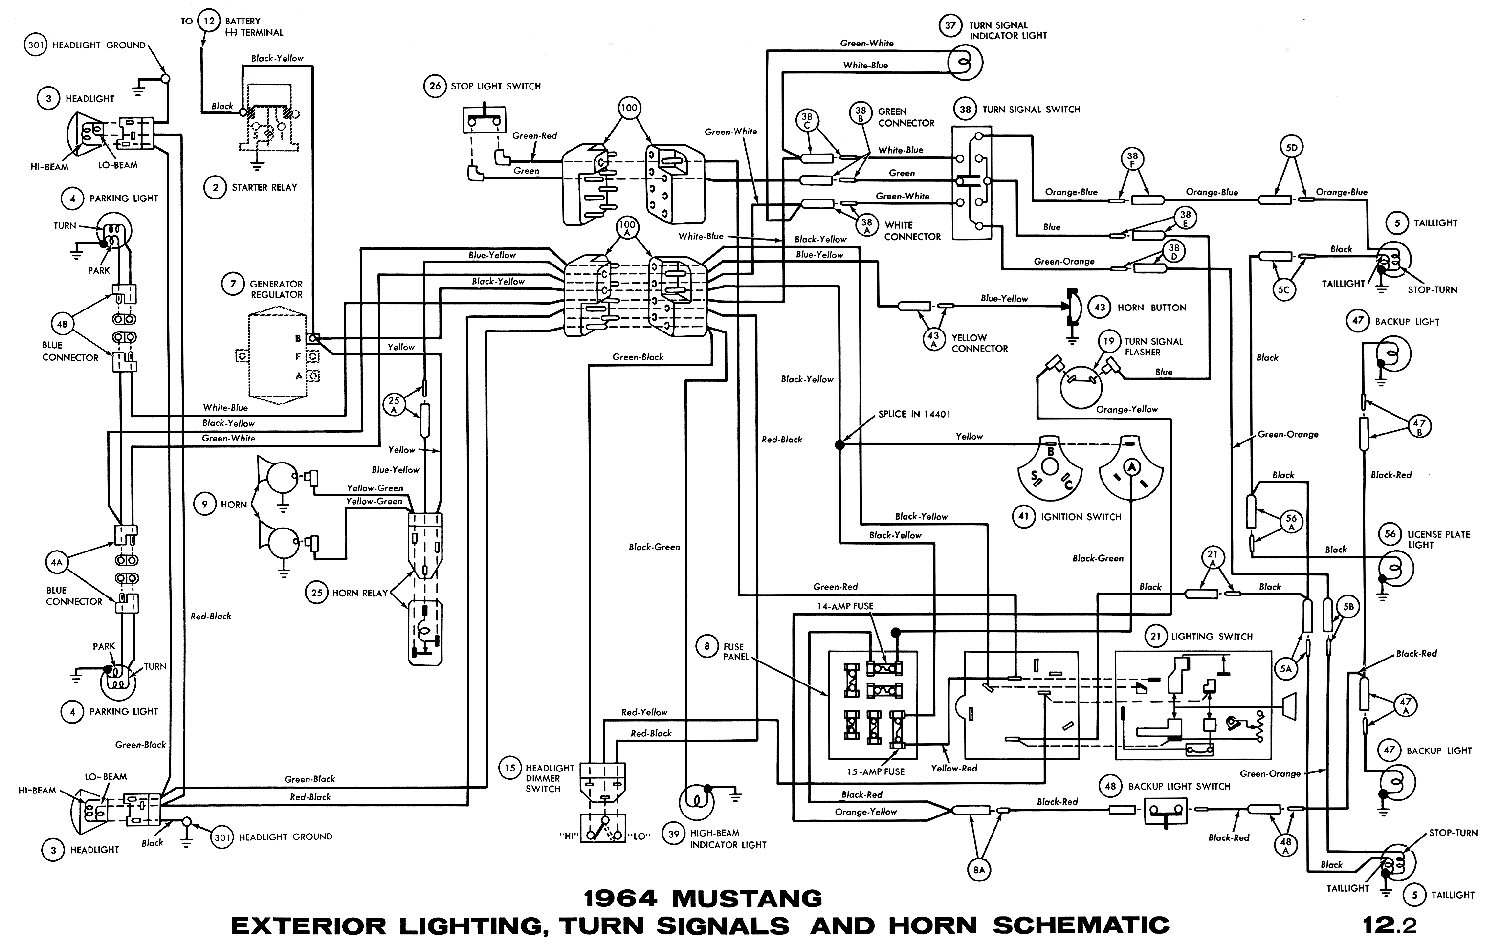 66 mustang horn diagram   23 wiring diagram images